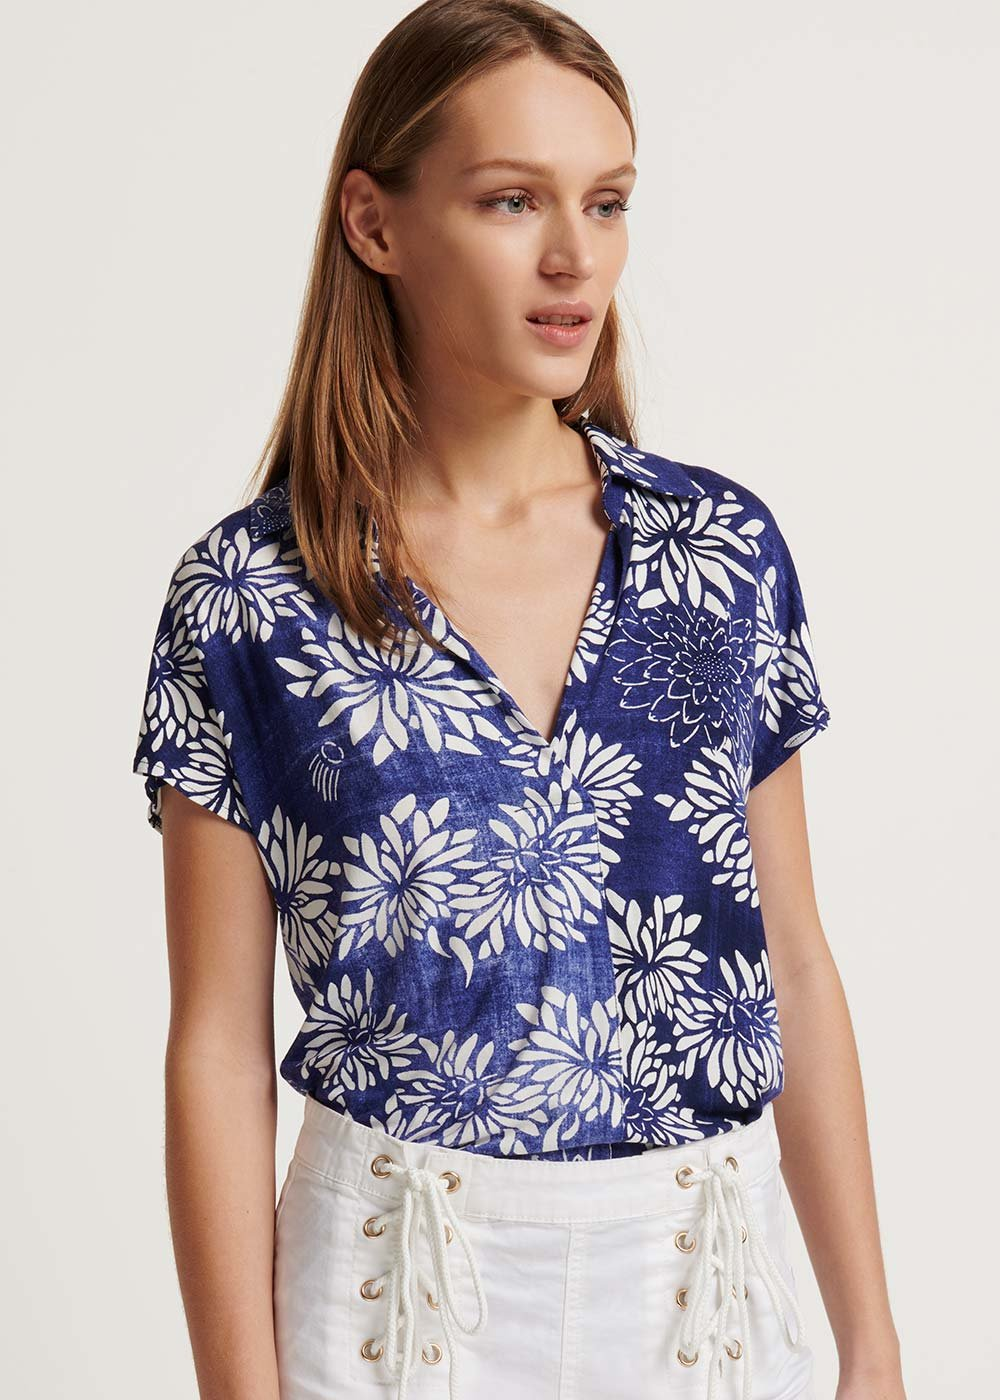 Samelia T-shirt with floral blue pattern - Blu / White / Fantasia - Woman